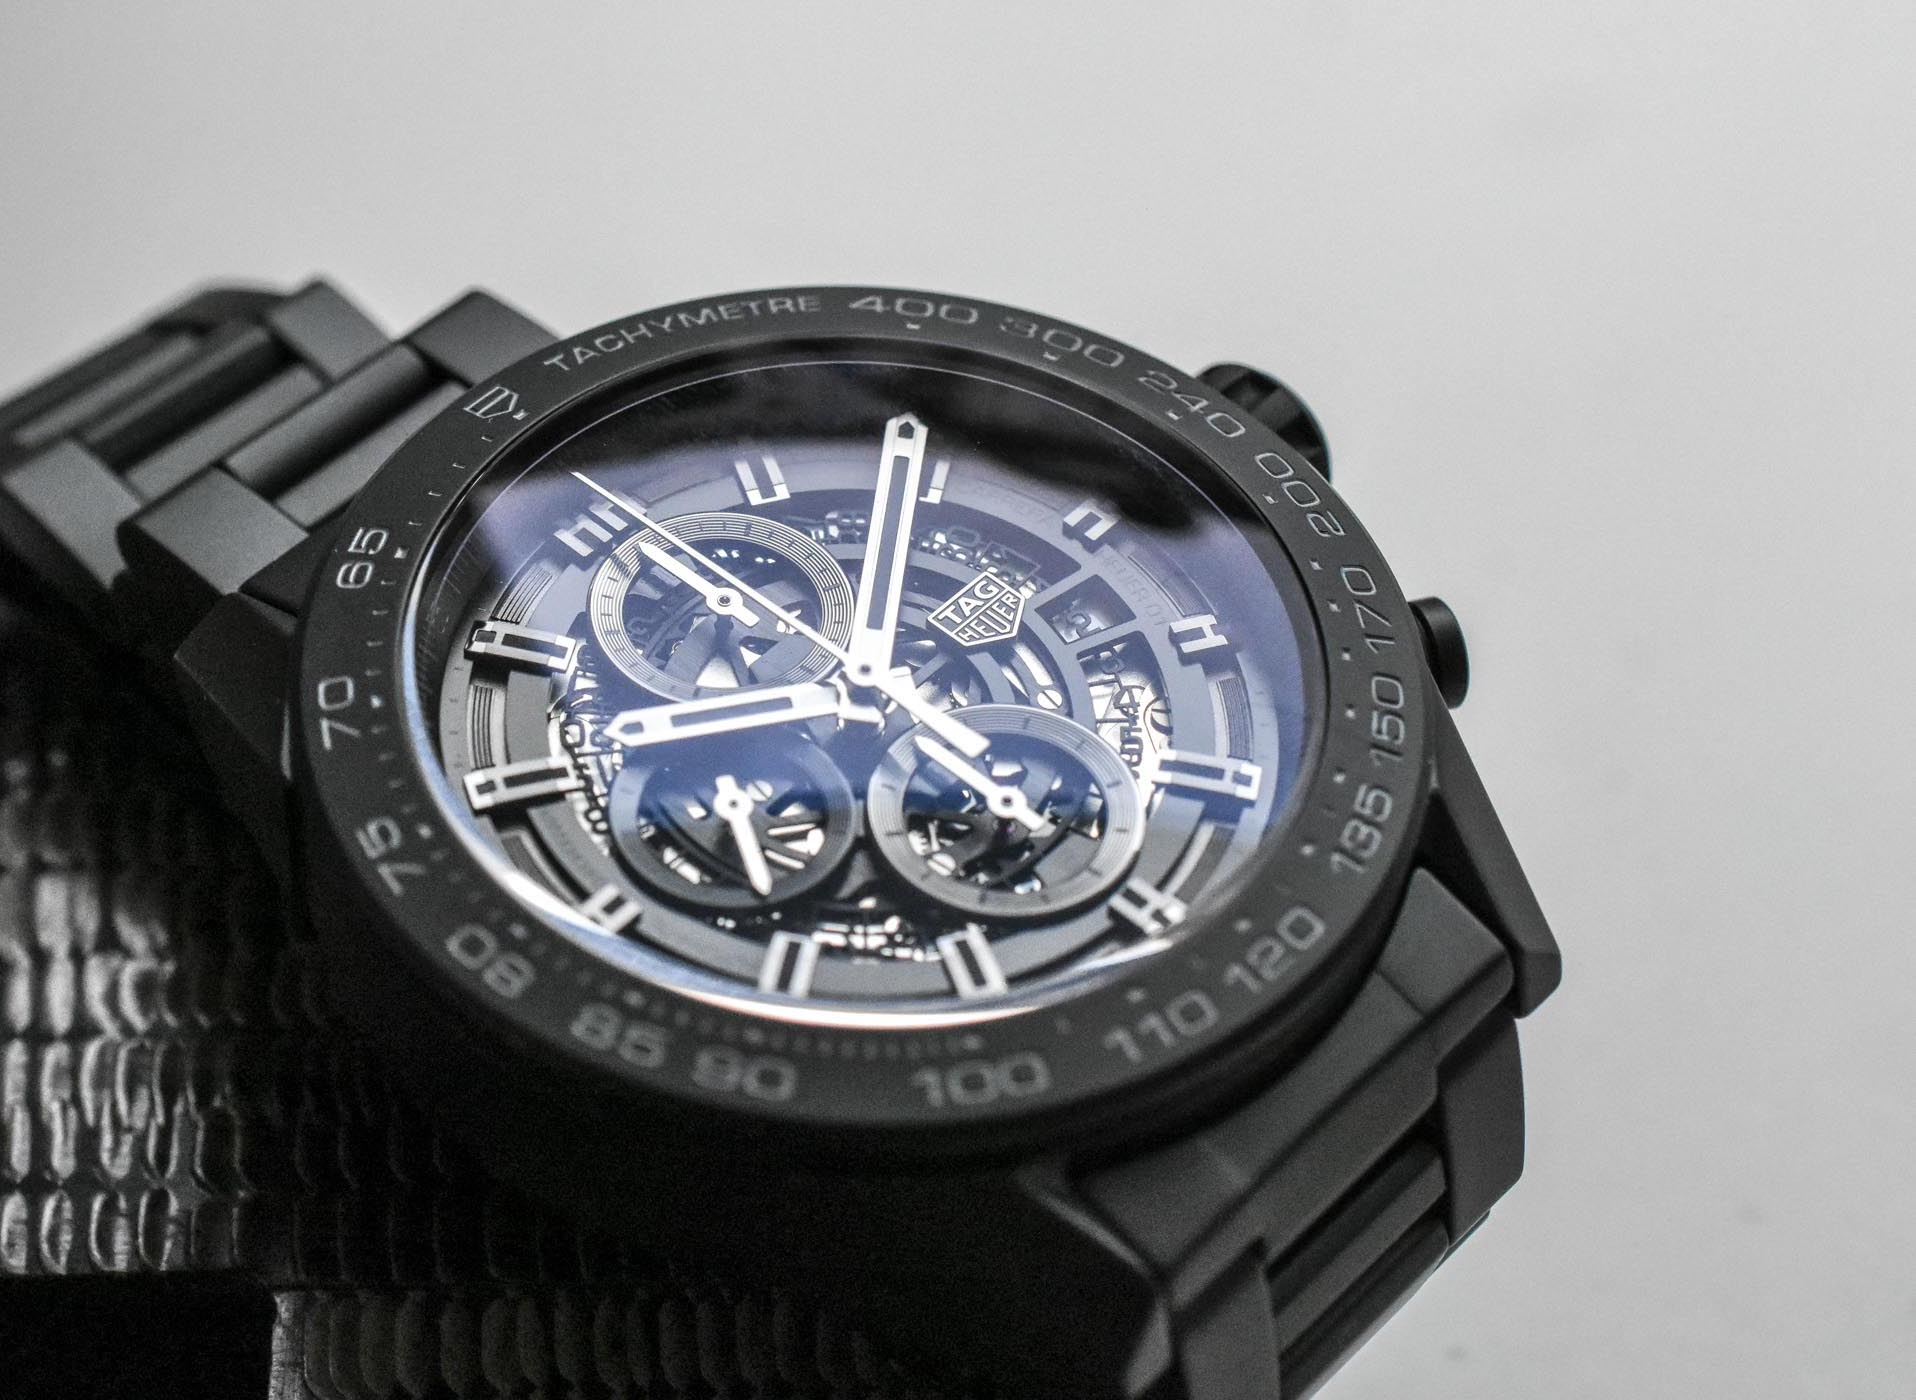 475a36a15 Tag Heuer Carrera Heuer-01 Full Black Matt Ceramic - 5 - Monochrome ...